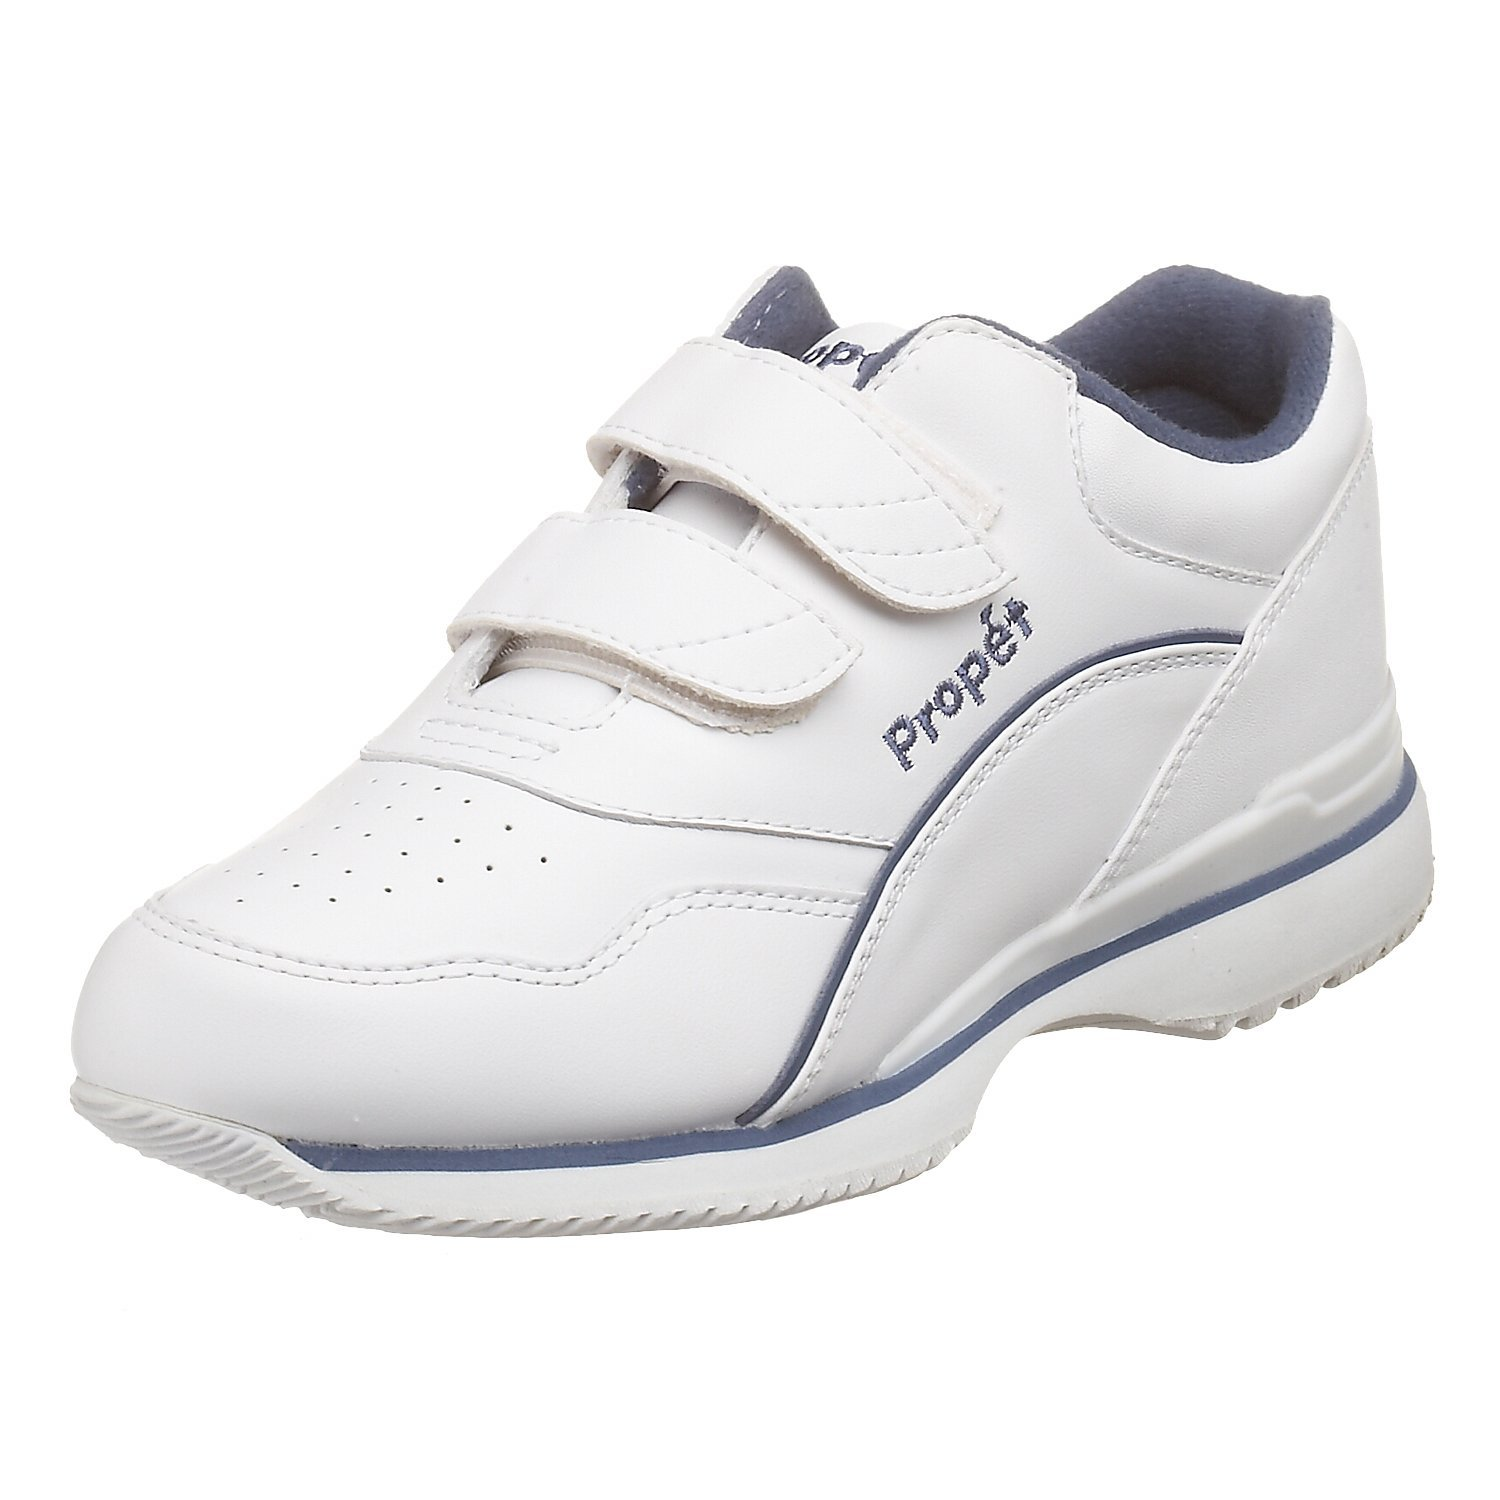 Propet Shoes White